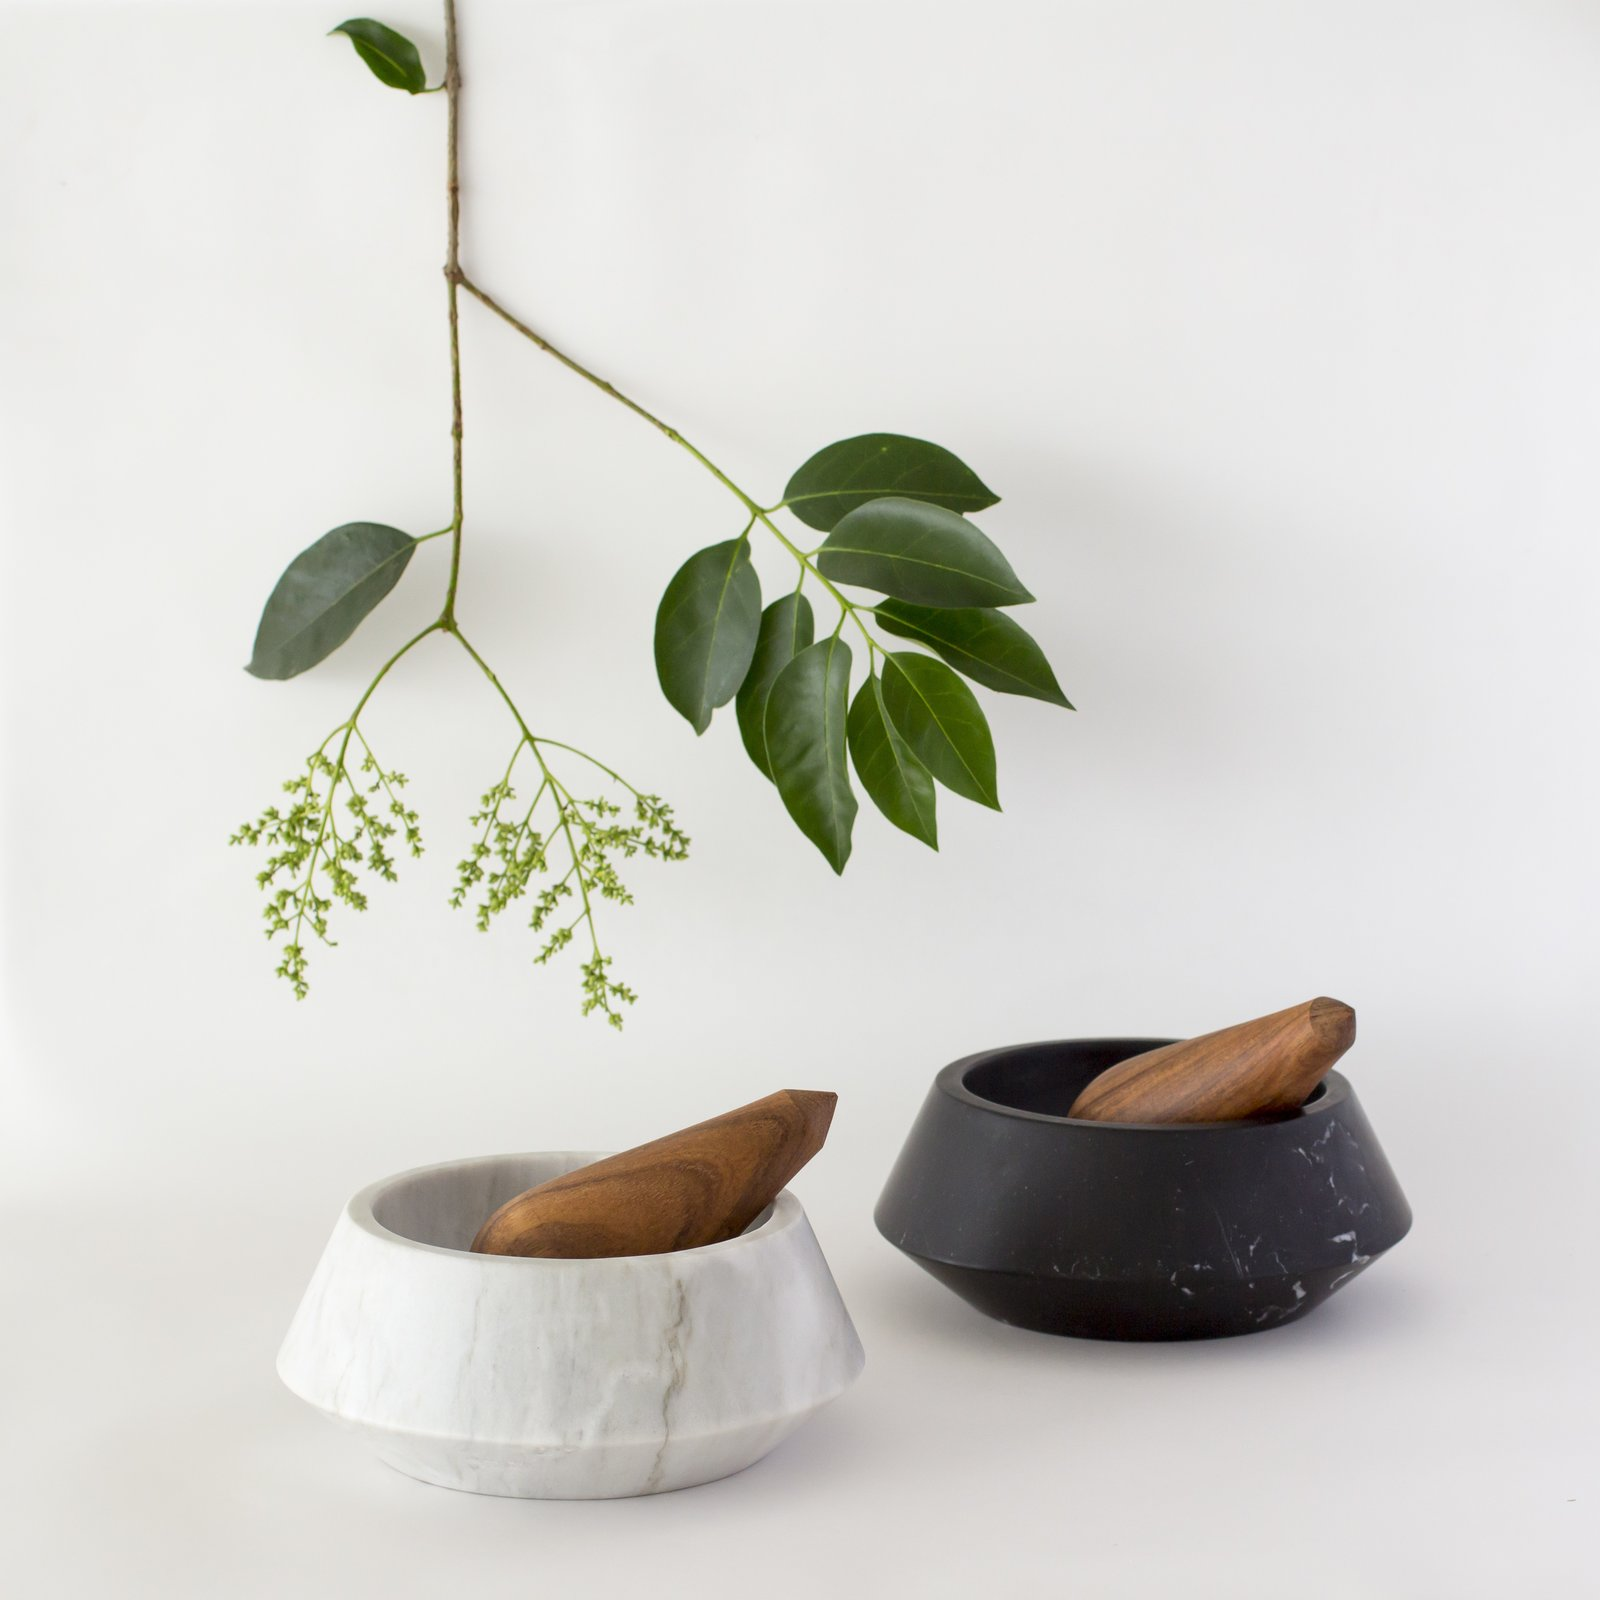 The mortar of their pestle and mortar is made with two types of marble while the pestle is handmade out of Guayacan wood that's sourced from the Yucatán and is finished with palm wax and linseed oil.